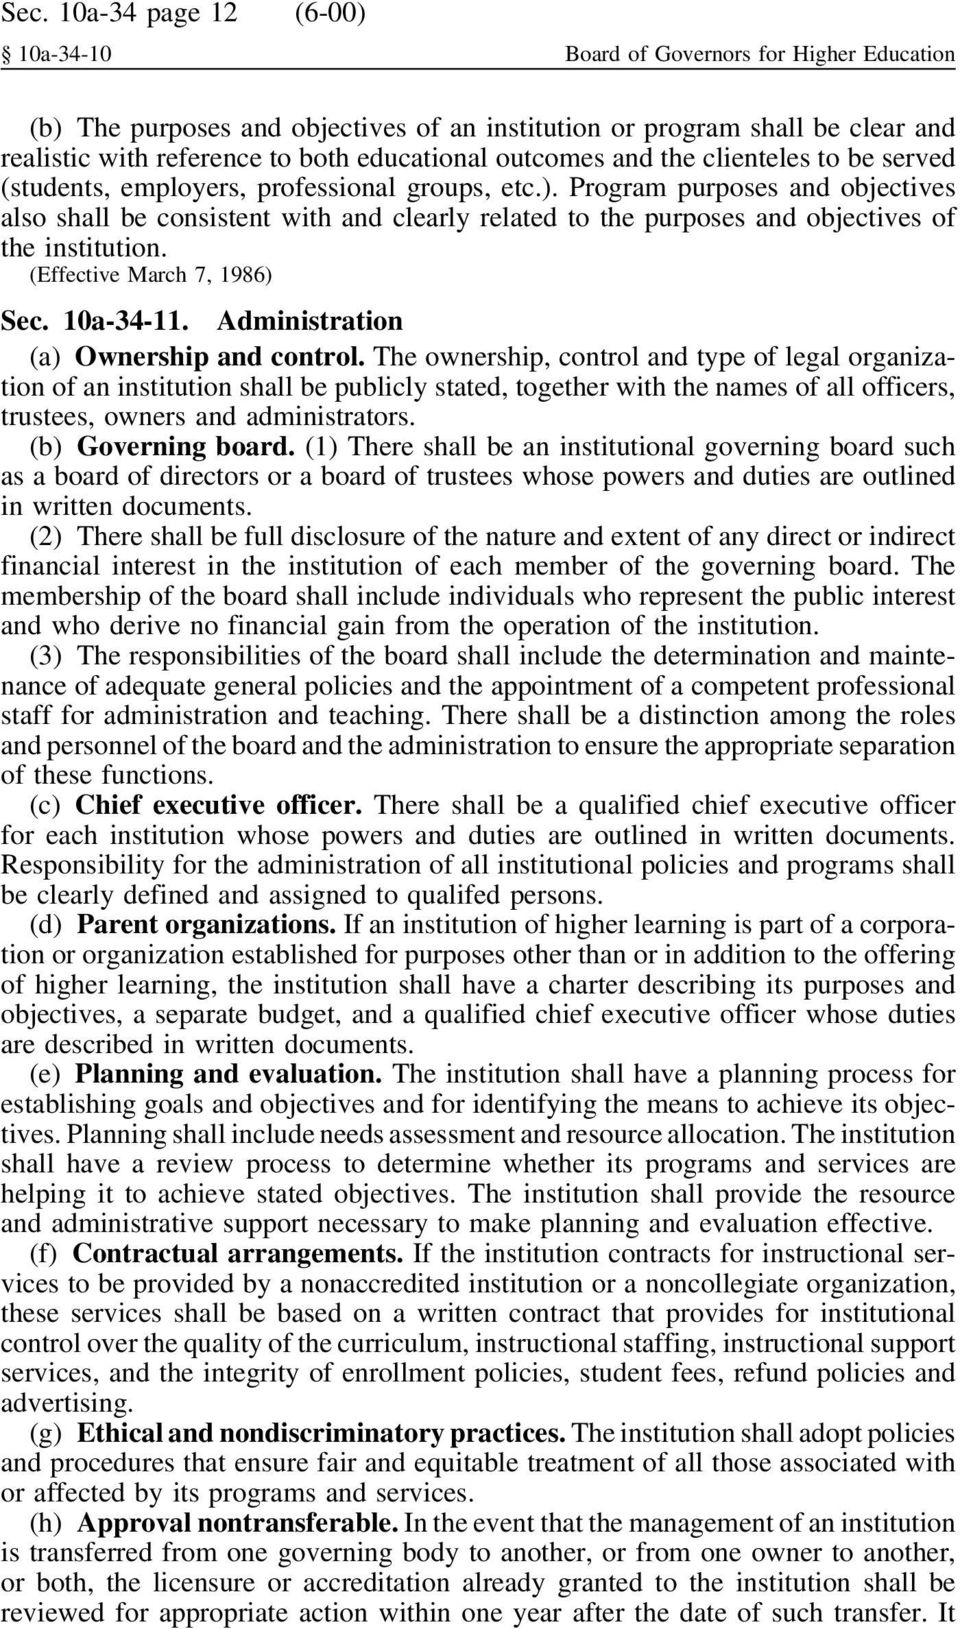 Program purposes and objectives also shall be consistent with and clearly related to the purposes and objectives of the institution. Sec. 10a-34-11. Administration (a) Ownership and control.